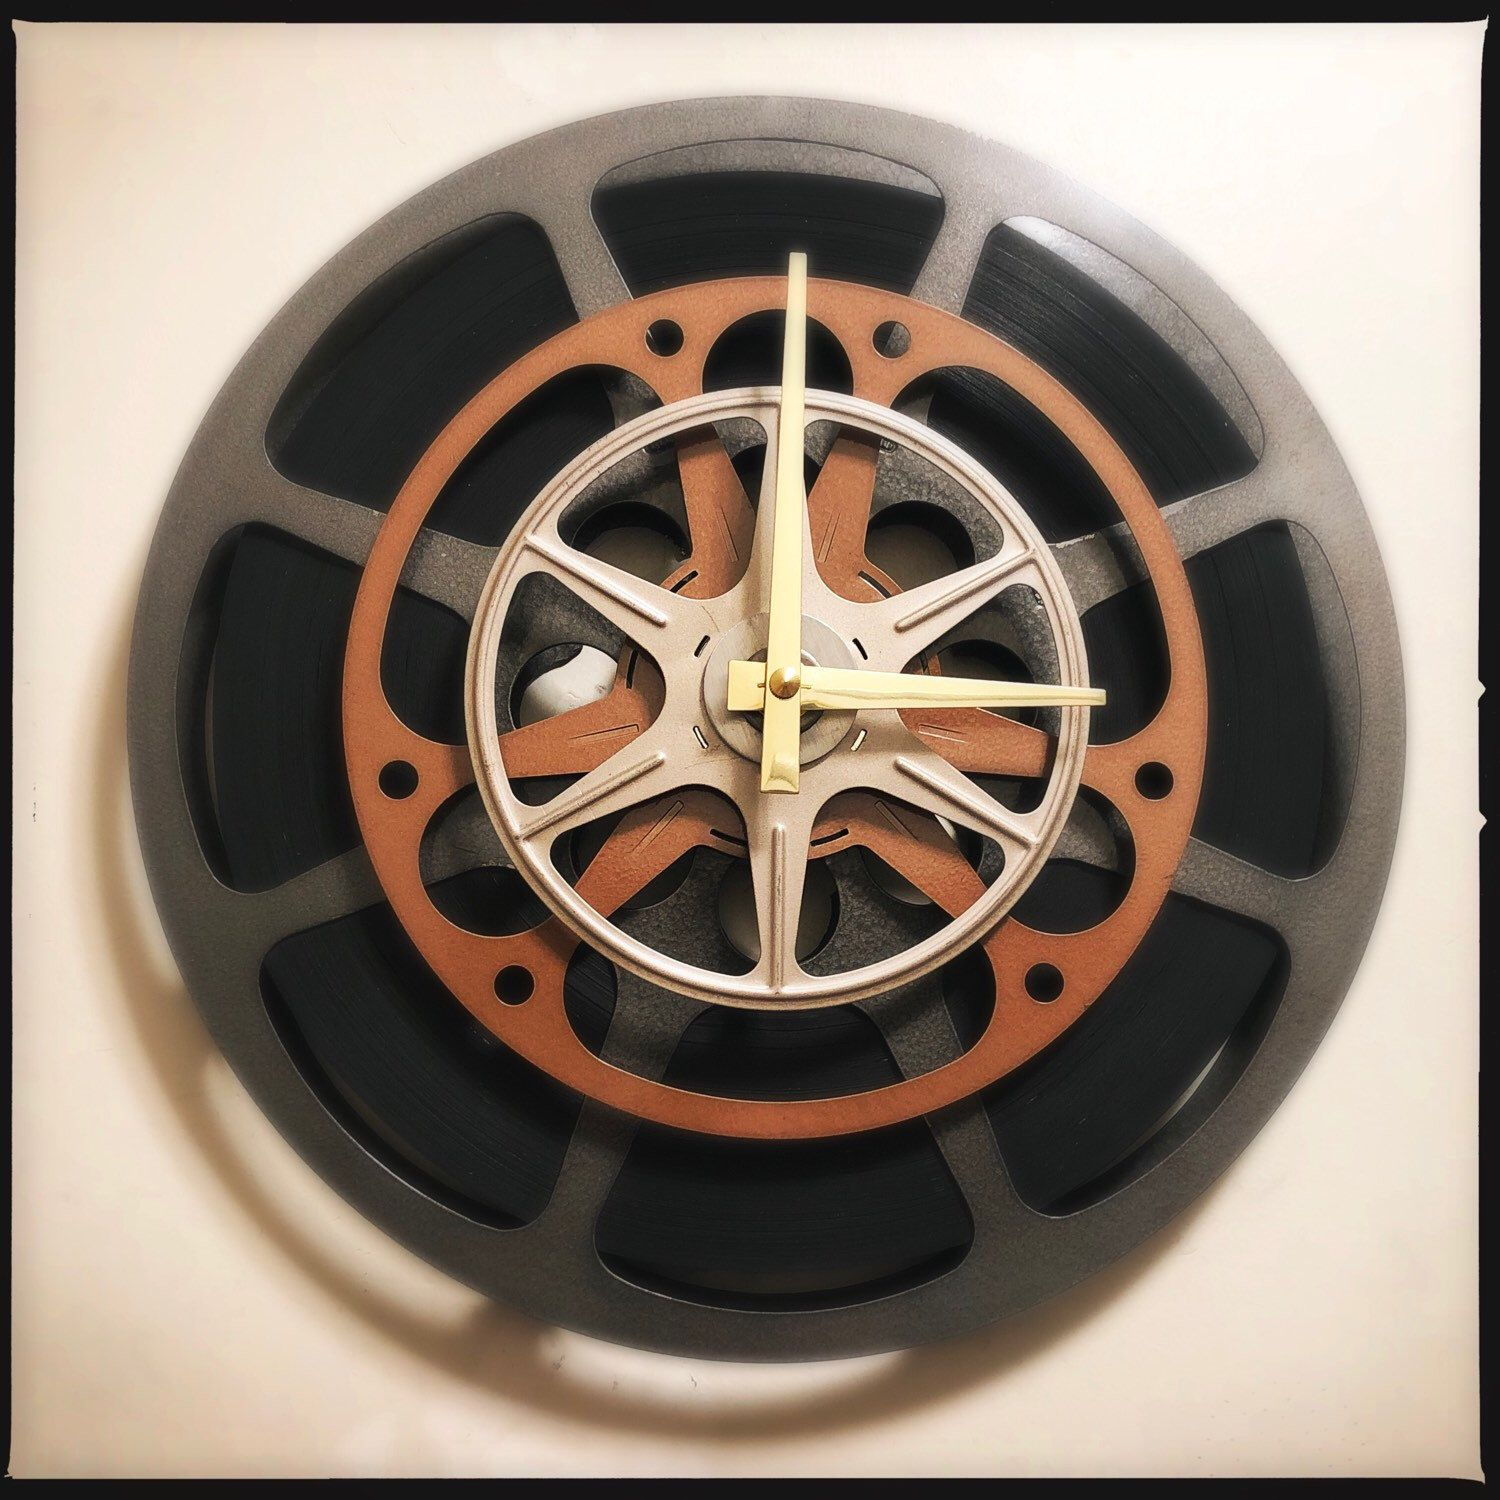 Tons Of Film Reel Wall Clocks For Sale In My Etsy Shop In